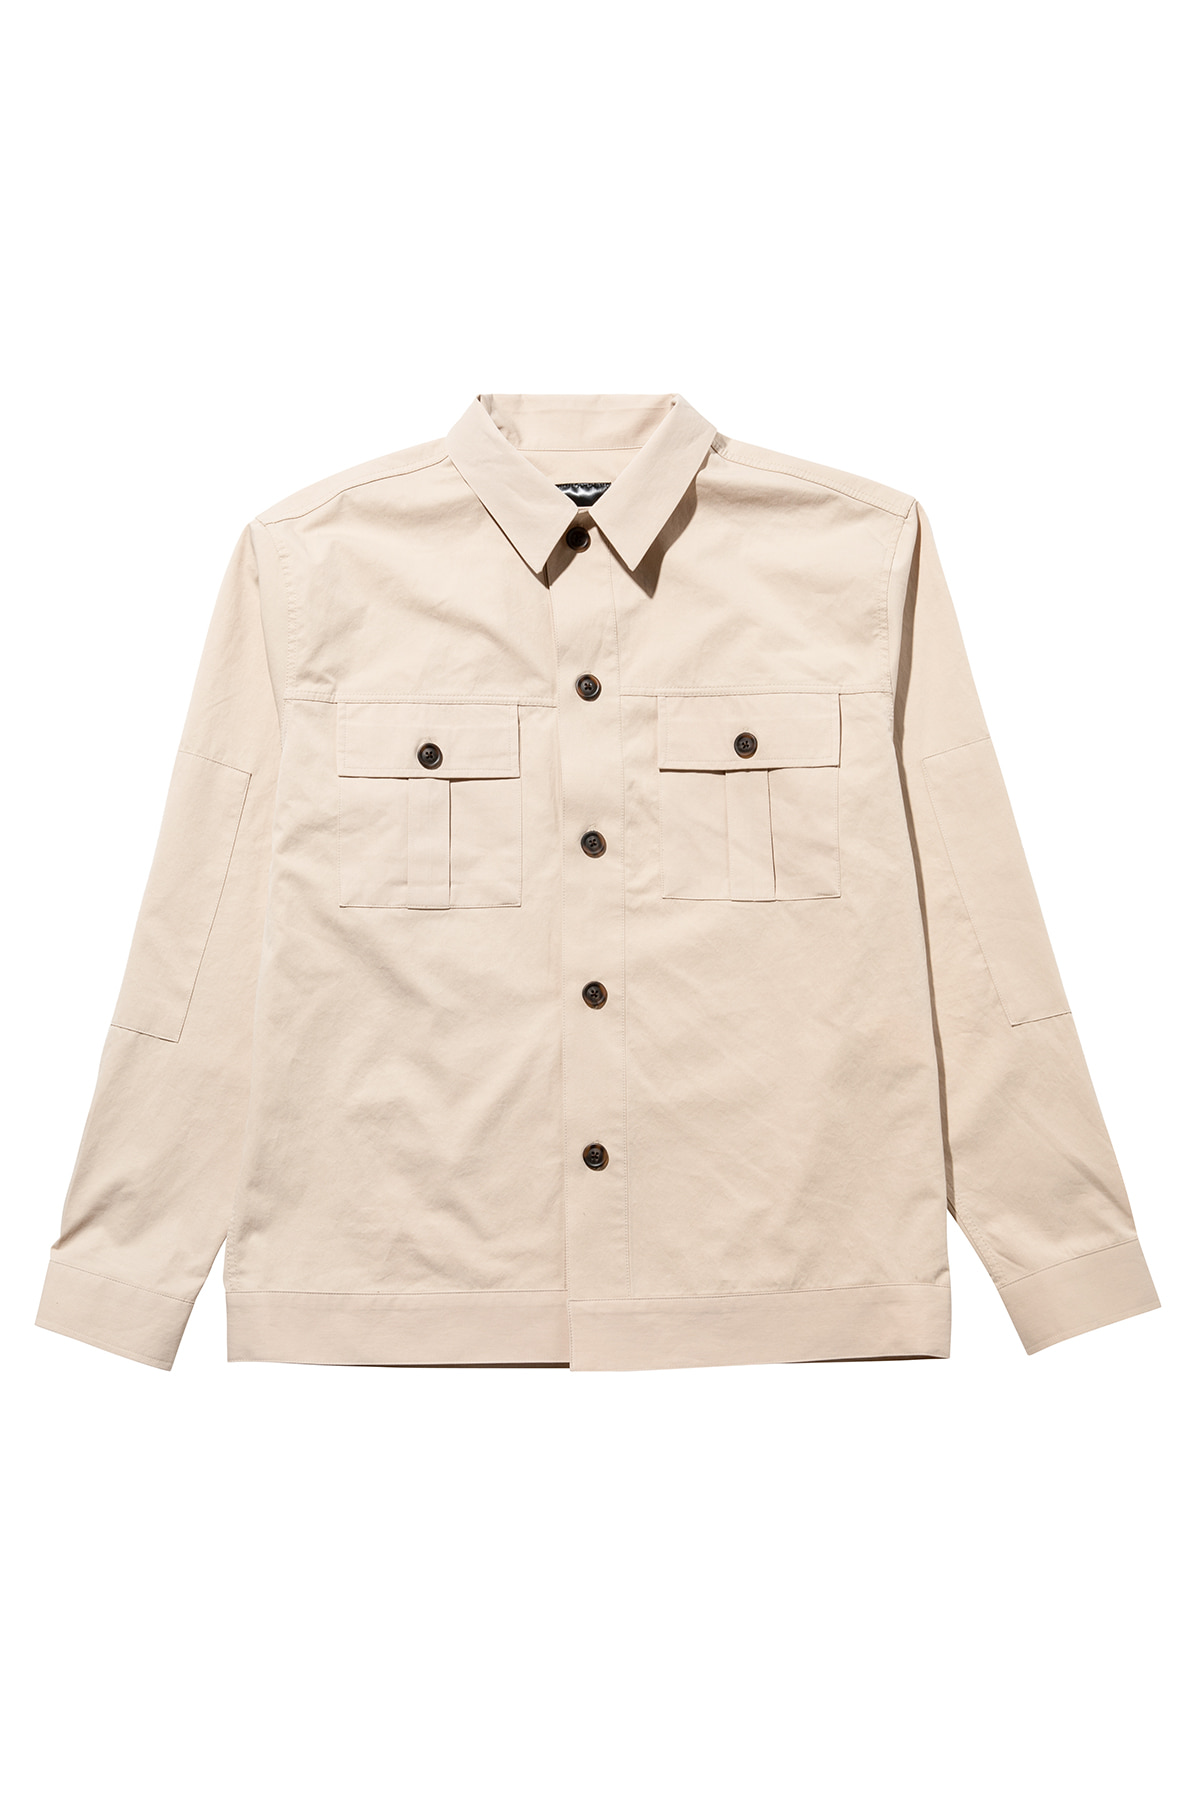 Fatigue pocket shirt jacket (beige) #jp36